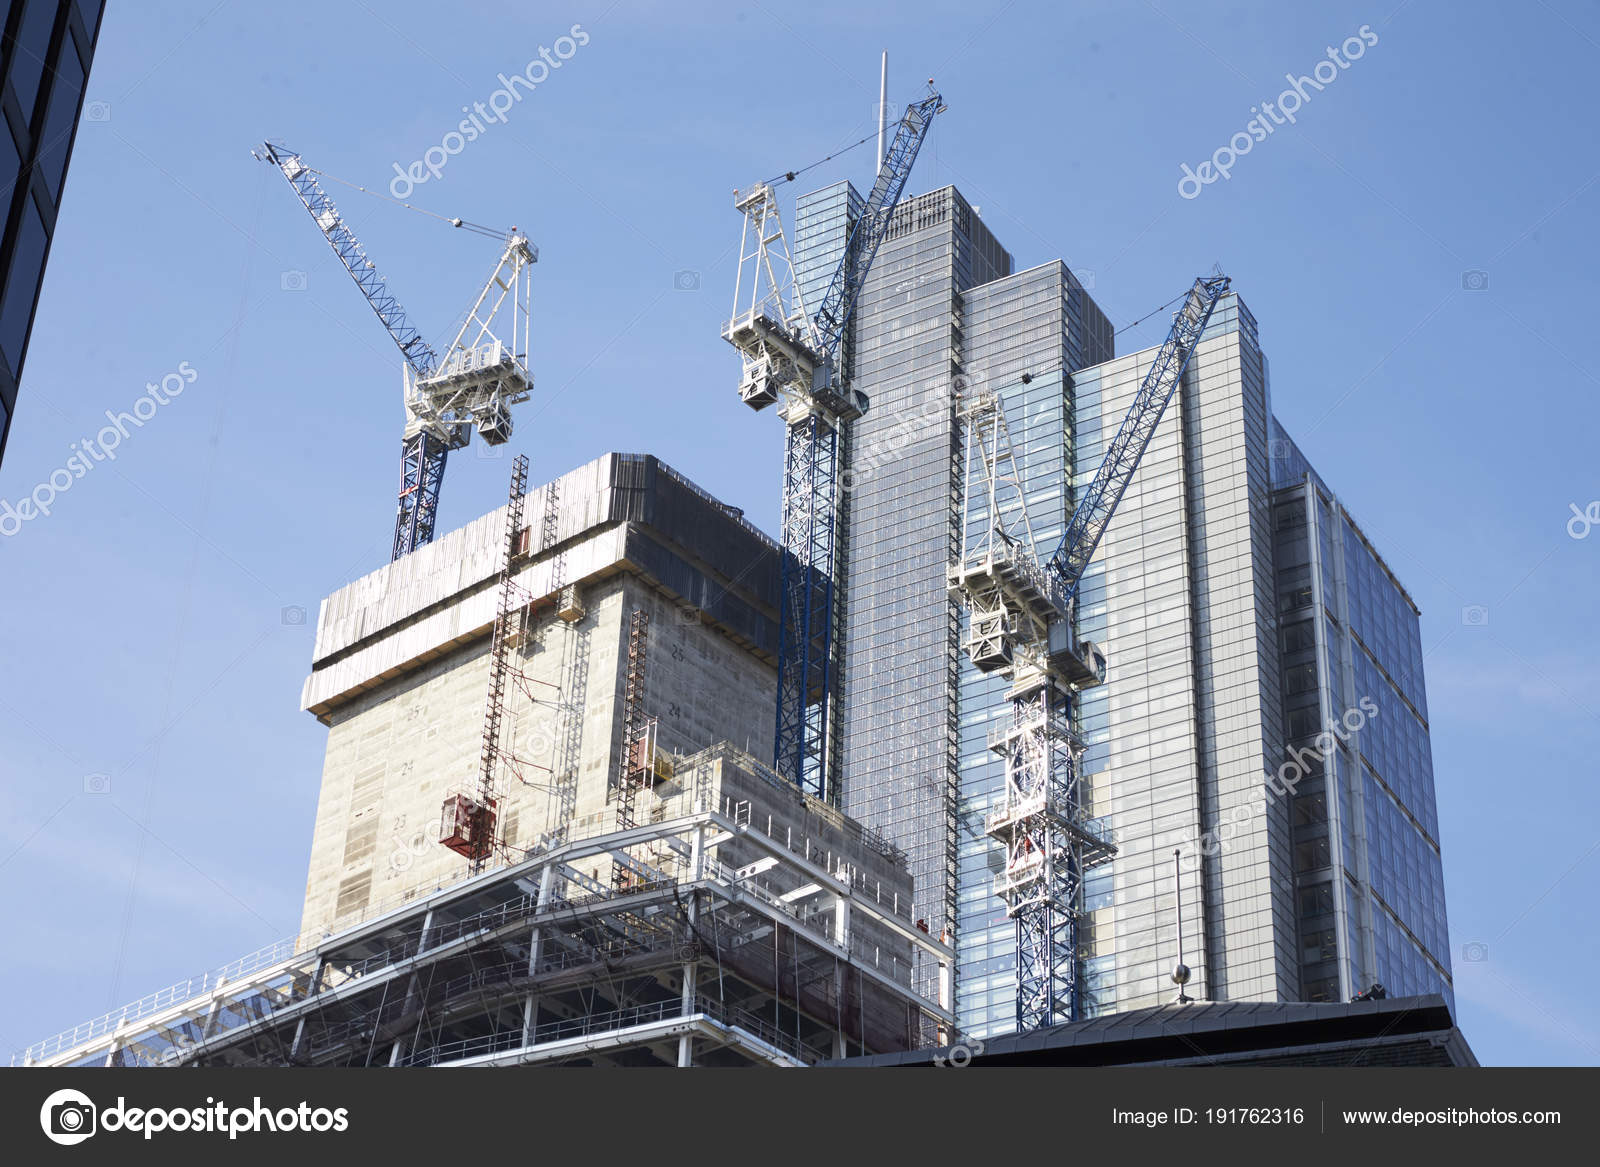 0eadd6a70a London May 2017 Cranes Working Construction Modern Tower Blocks City —  Stock Photo